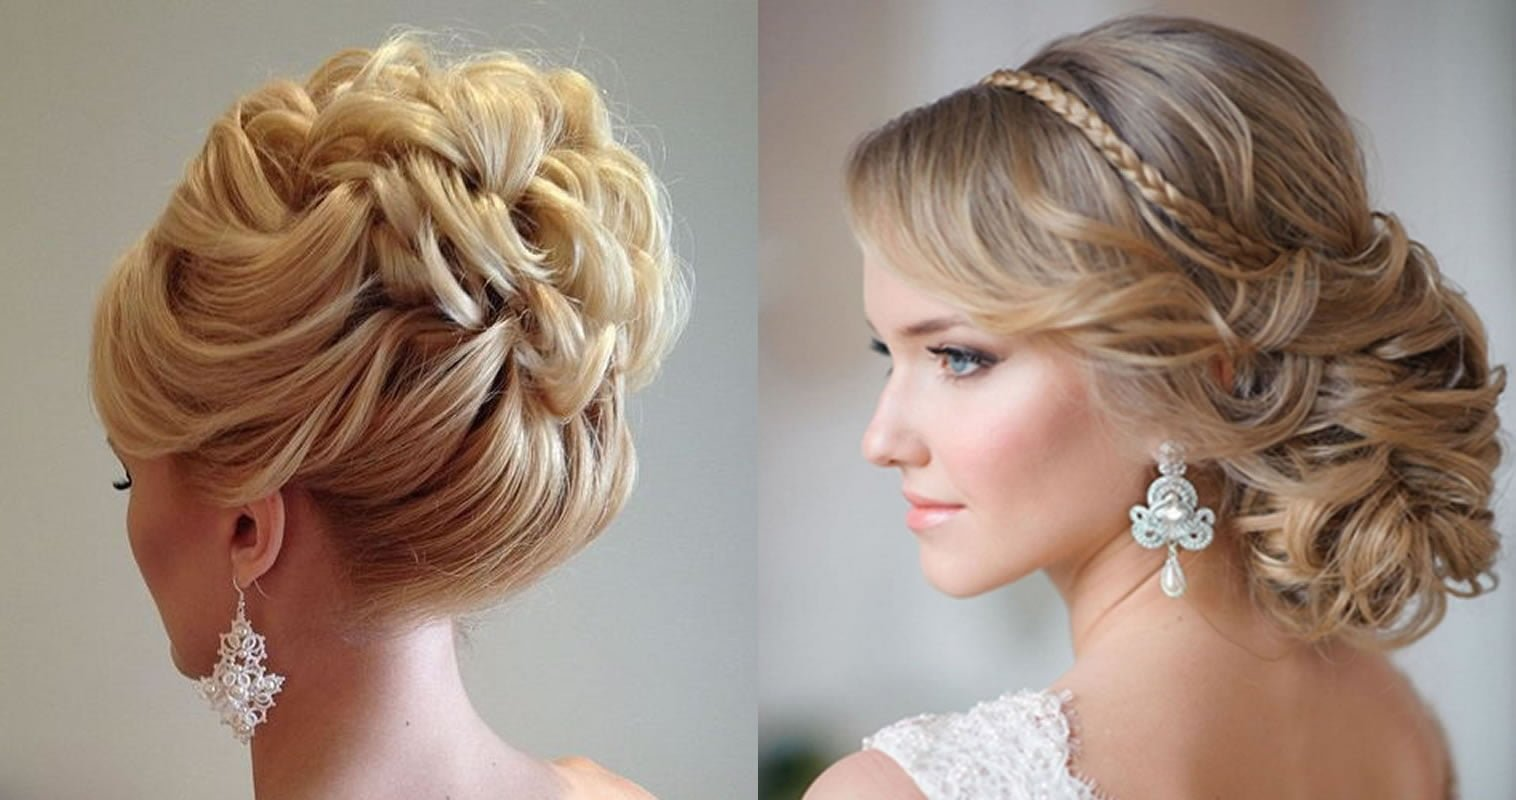 Free Updo Wedding Hairstyles 2019 Hair Color Ideas For Bride Wallpaper